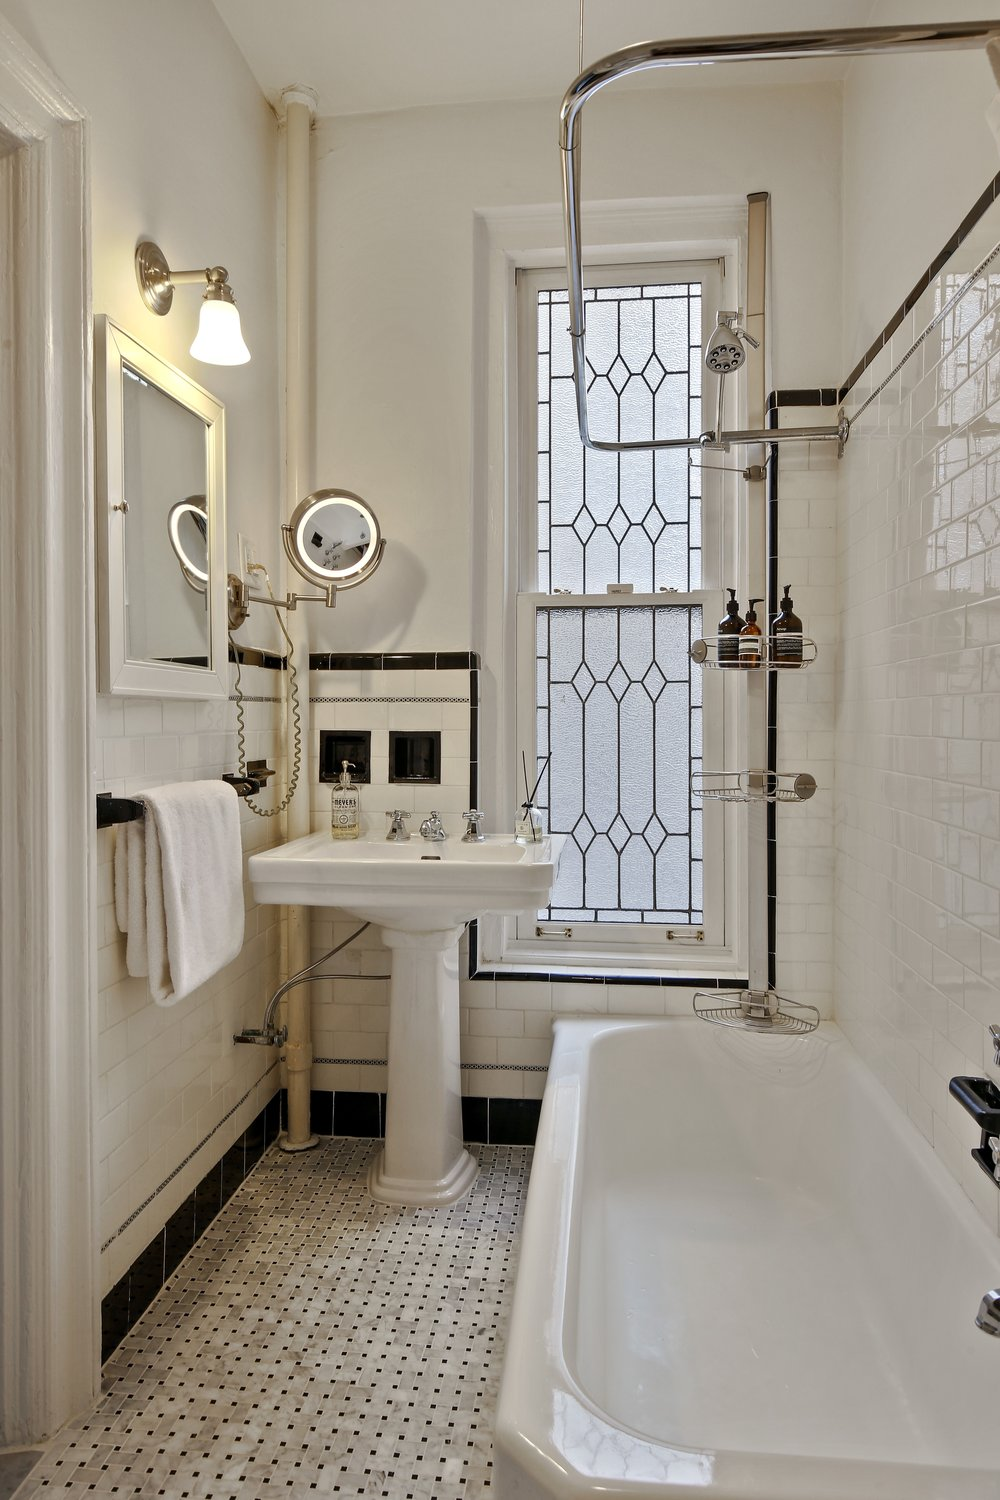 8_38LivingstonStreet_21_8_Bathroom_HiRes.jpg